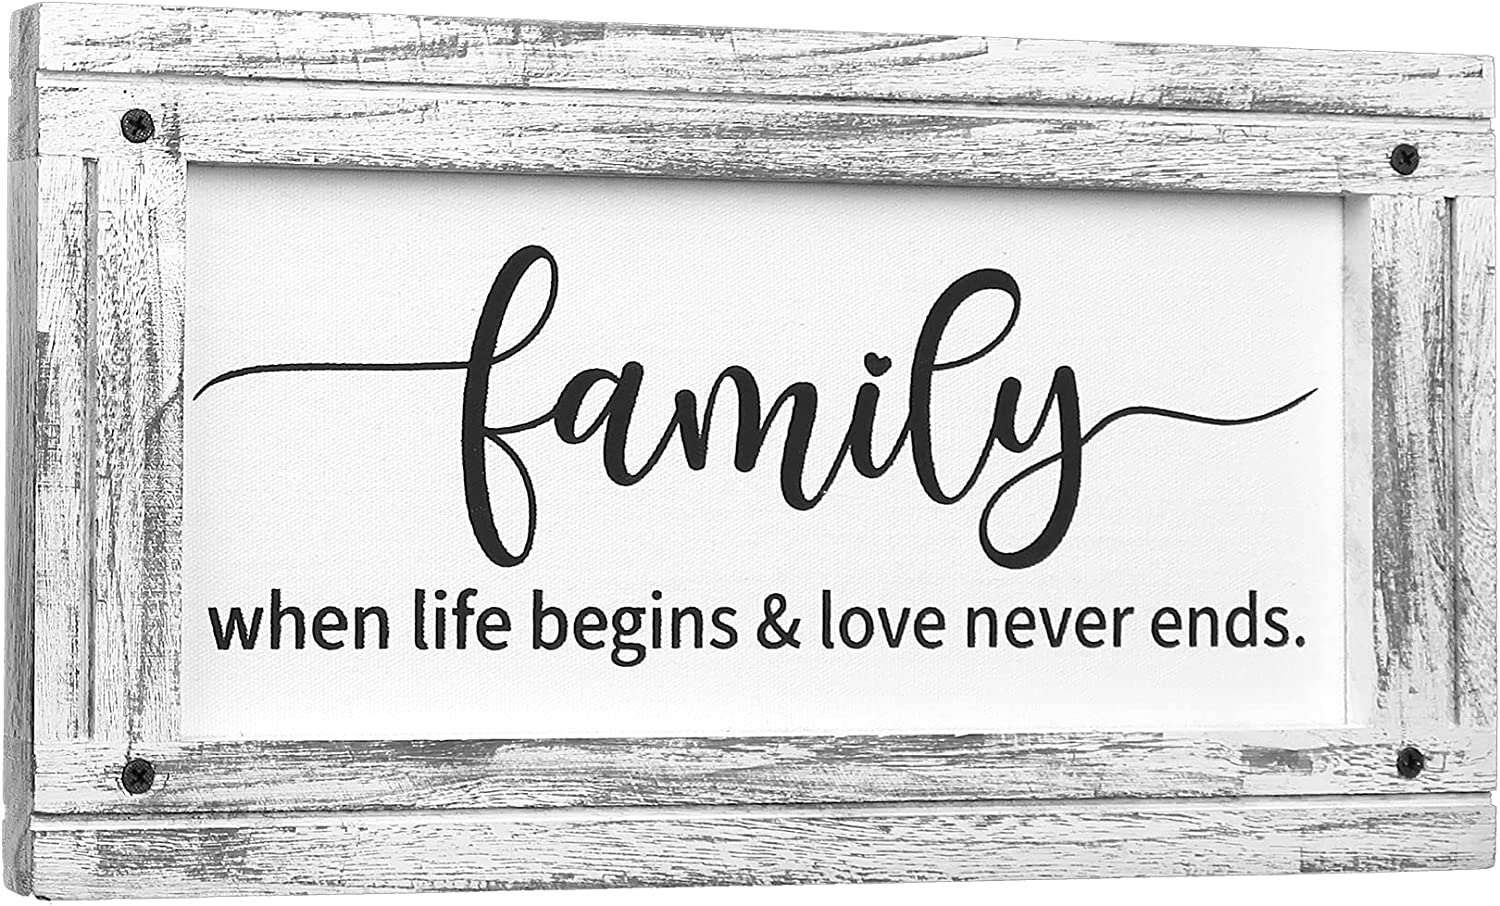 Family Wall Decor - Farmhouse Wooden Sign for New Life Begins , Gifts for Wedding,New Mom and Dad - Solid Wood Frame & Canvas Prints Art , Handmade Rustic Wall Decoration for Home - 8.5 x16 Inch